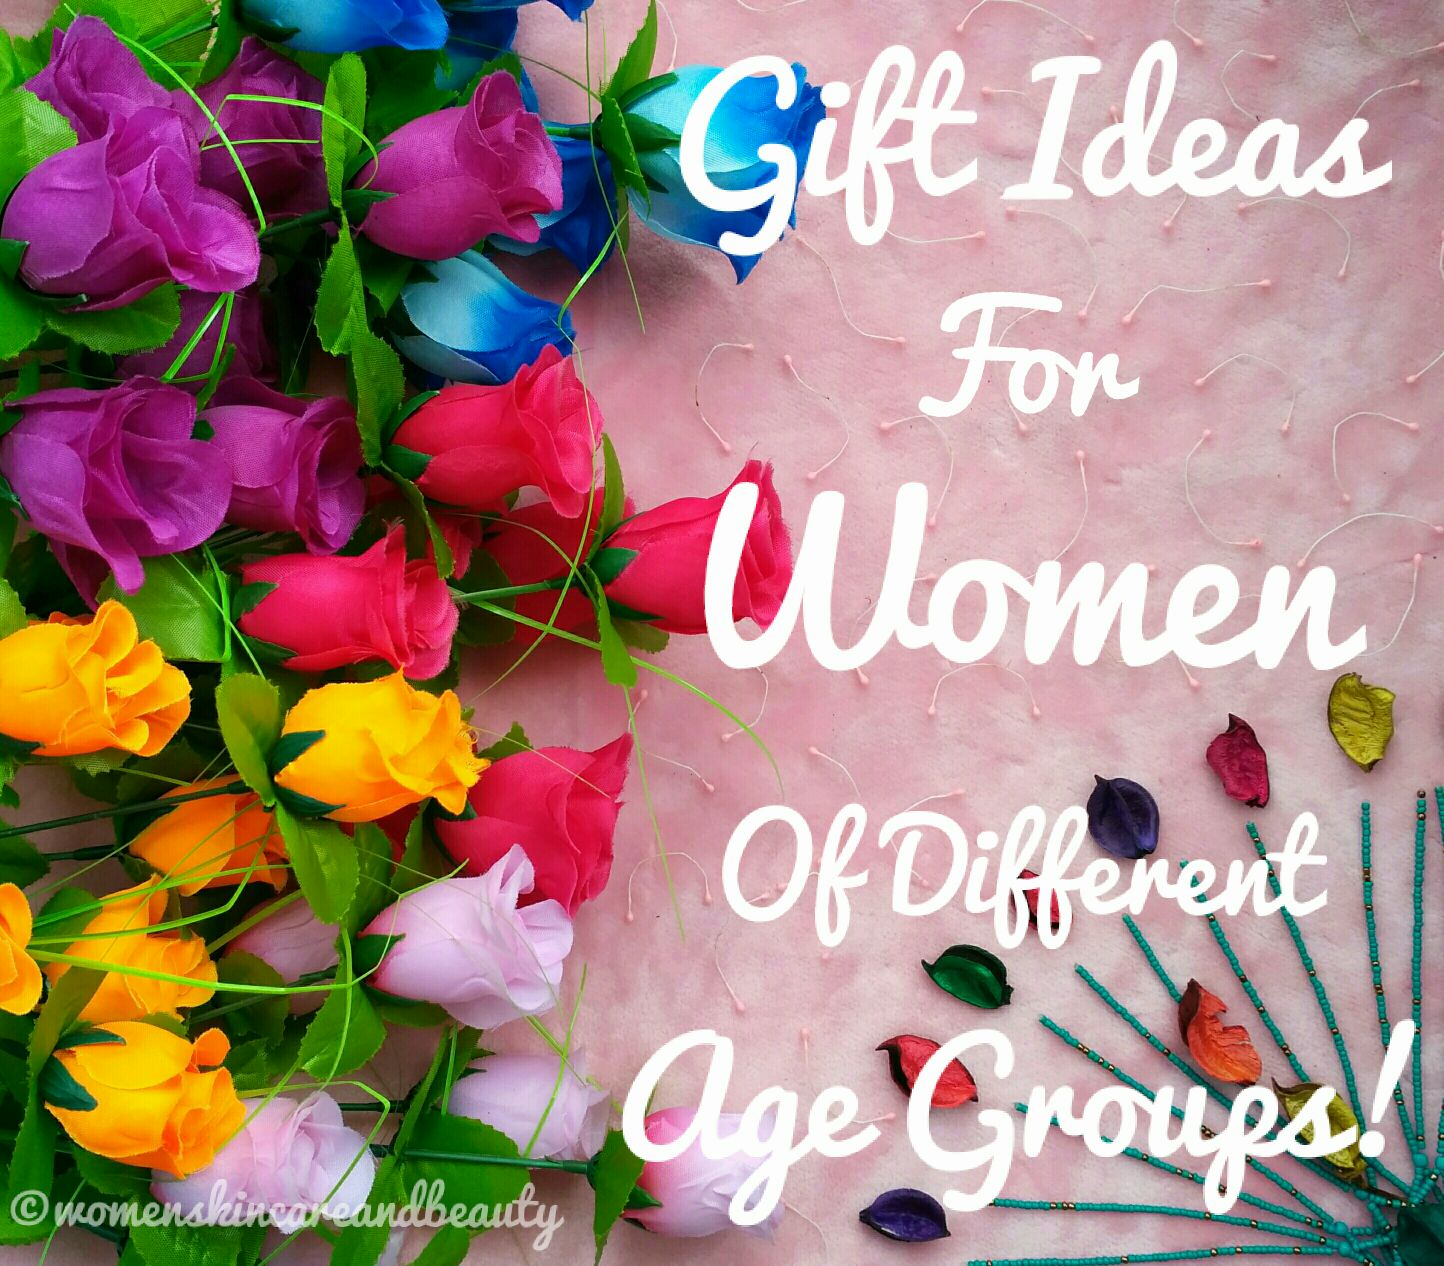 Gift ideas for women of different age groups